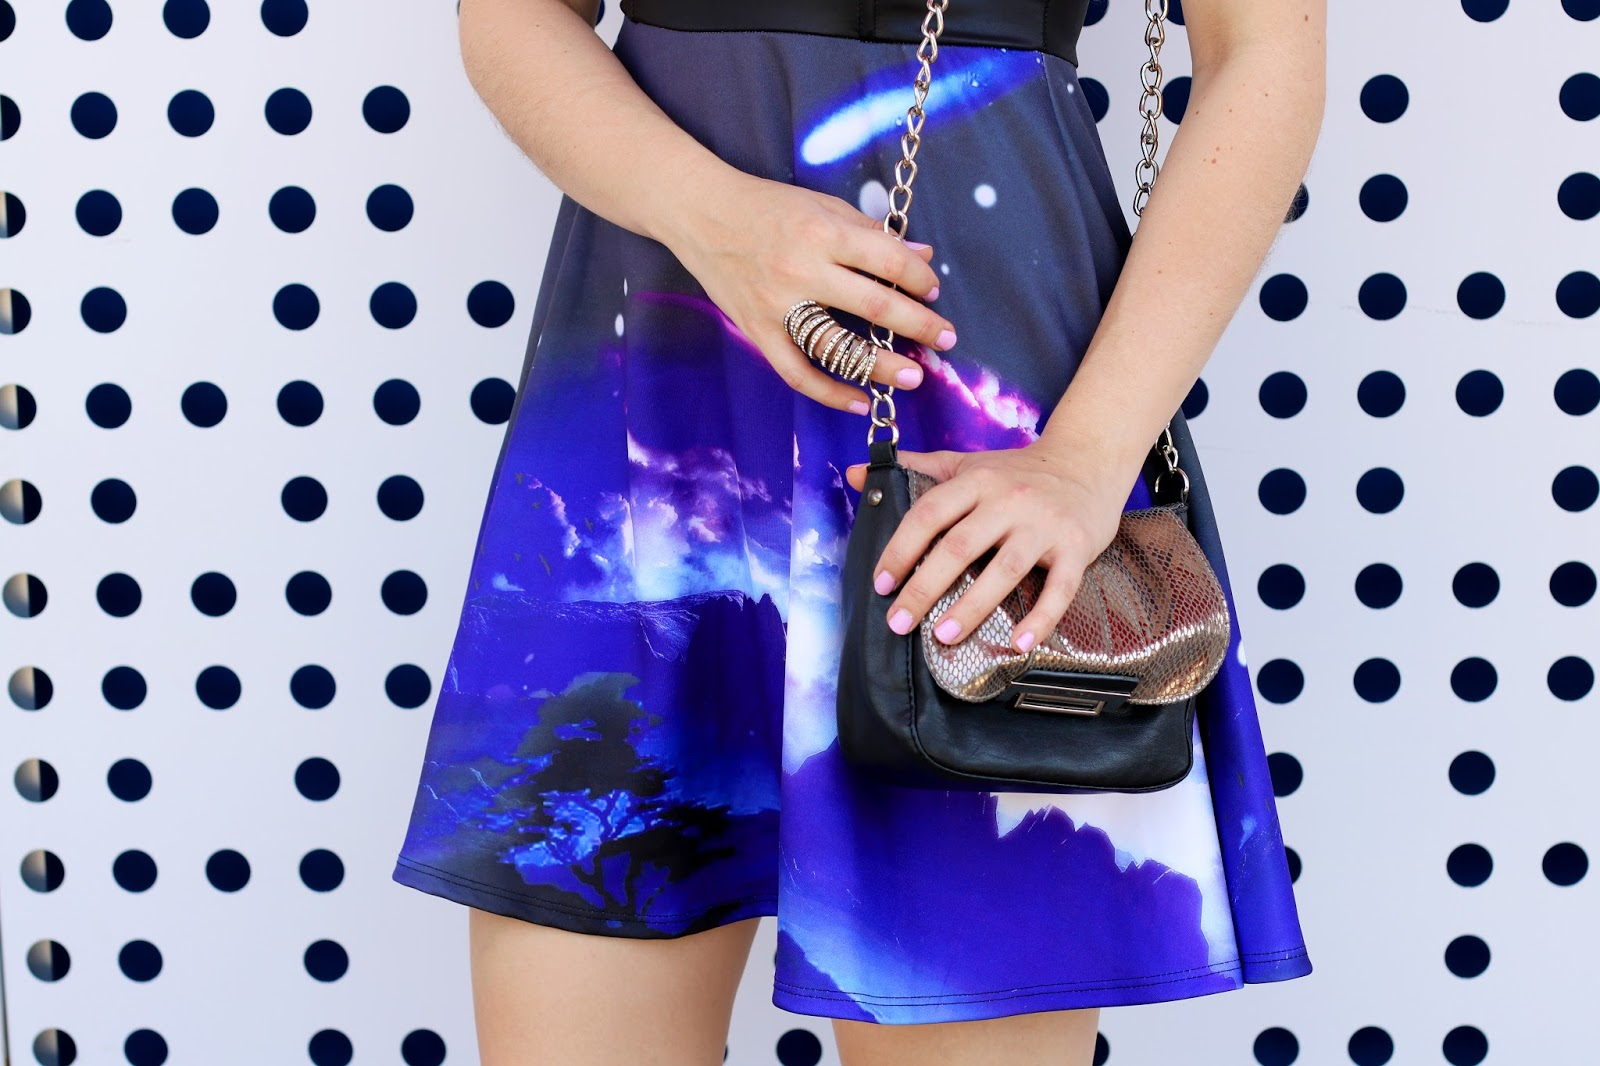 Loving this cool galaxy dress